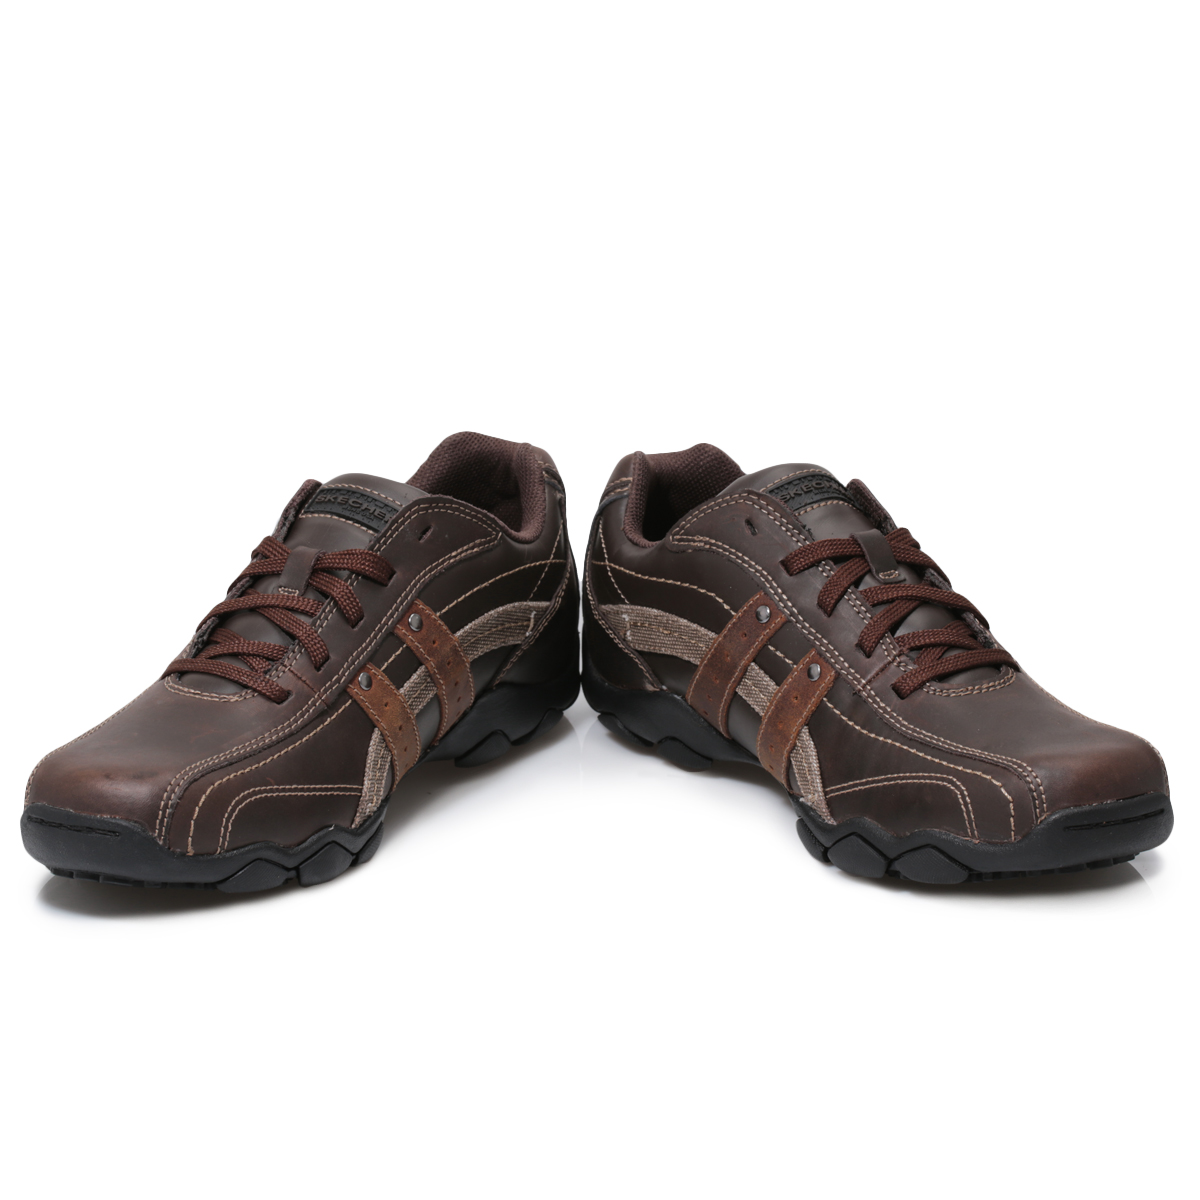 Are Us Size Shoes Mainly Mens Shoes